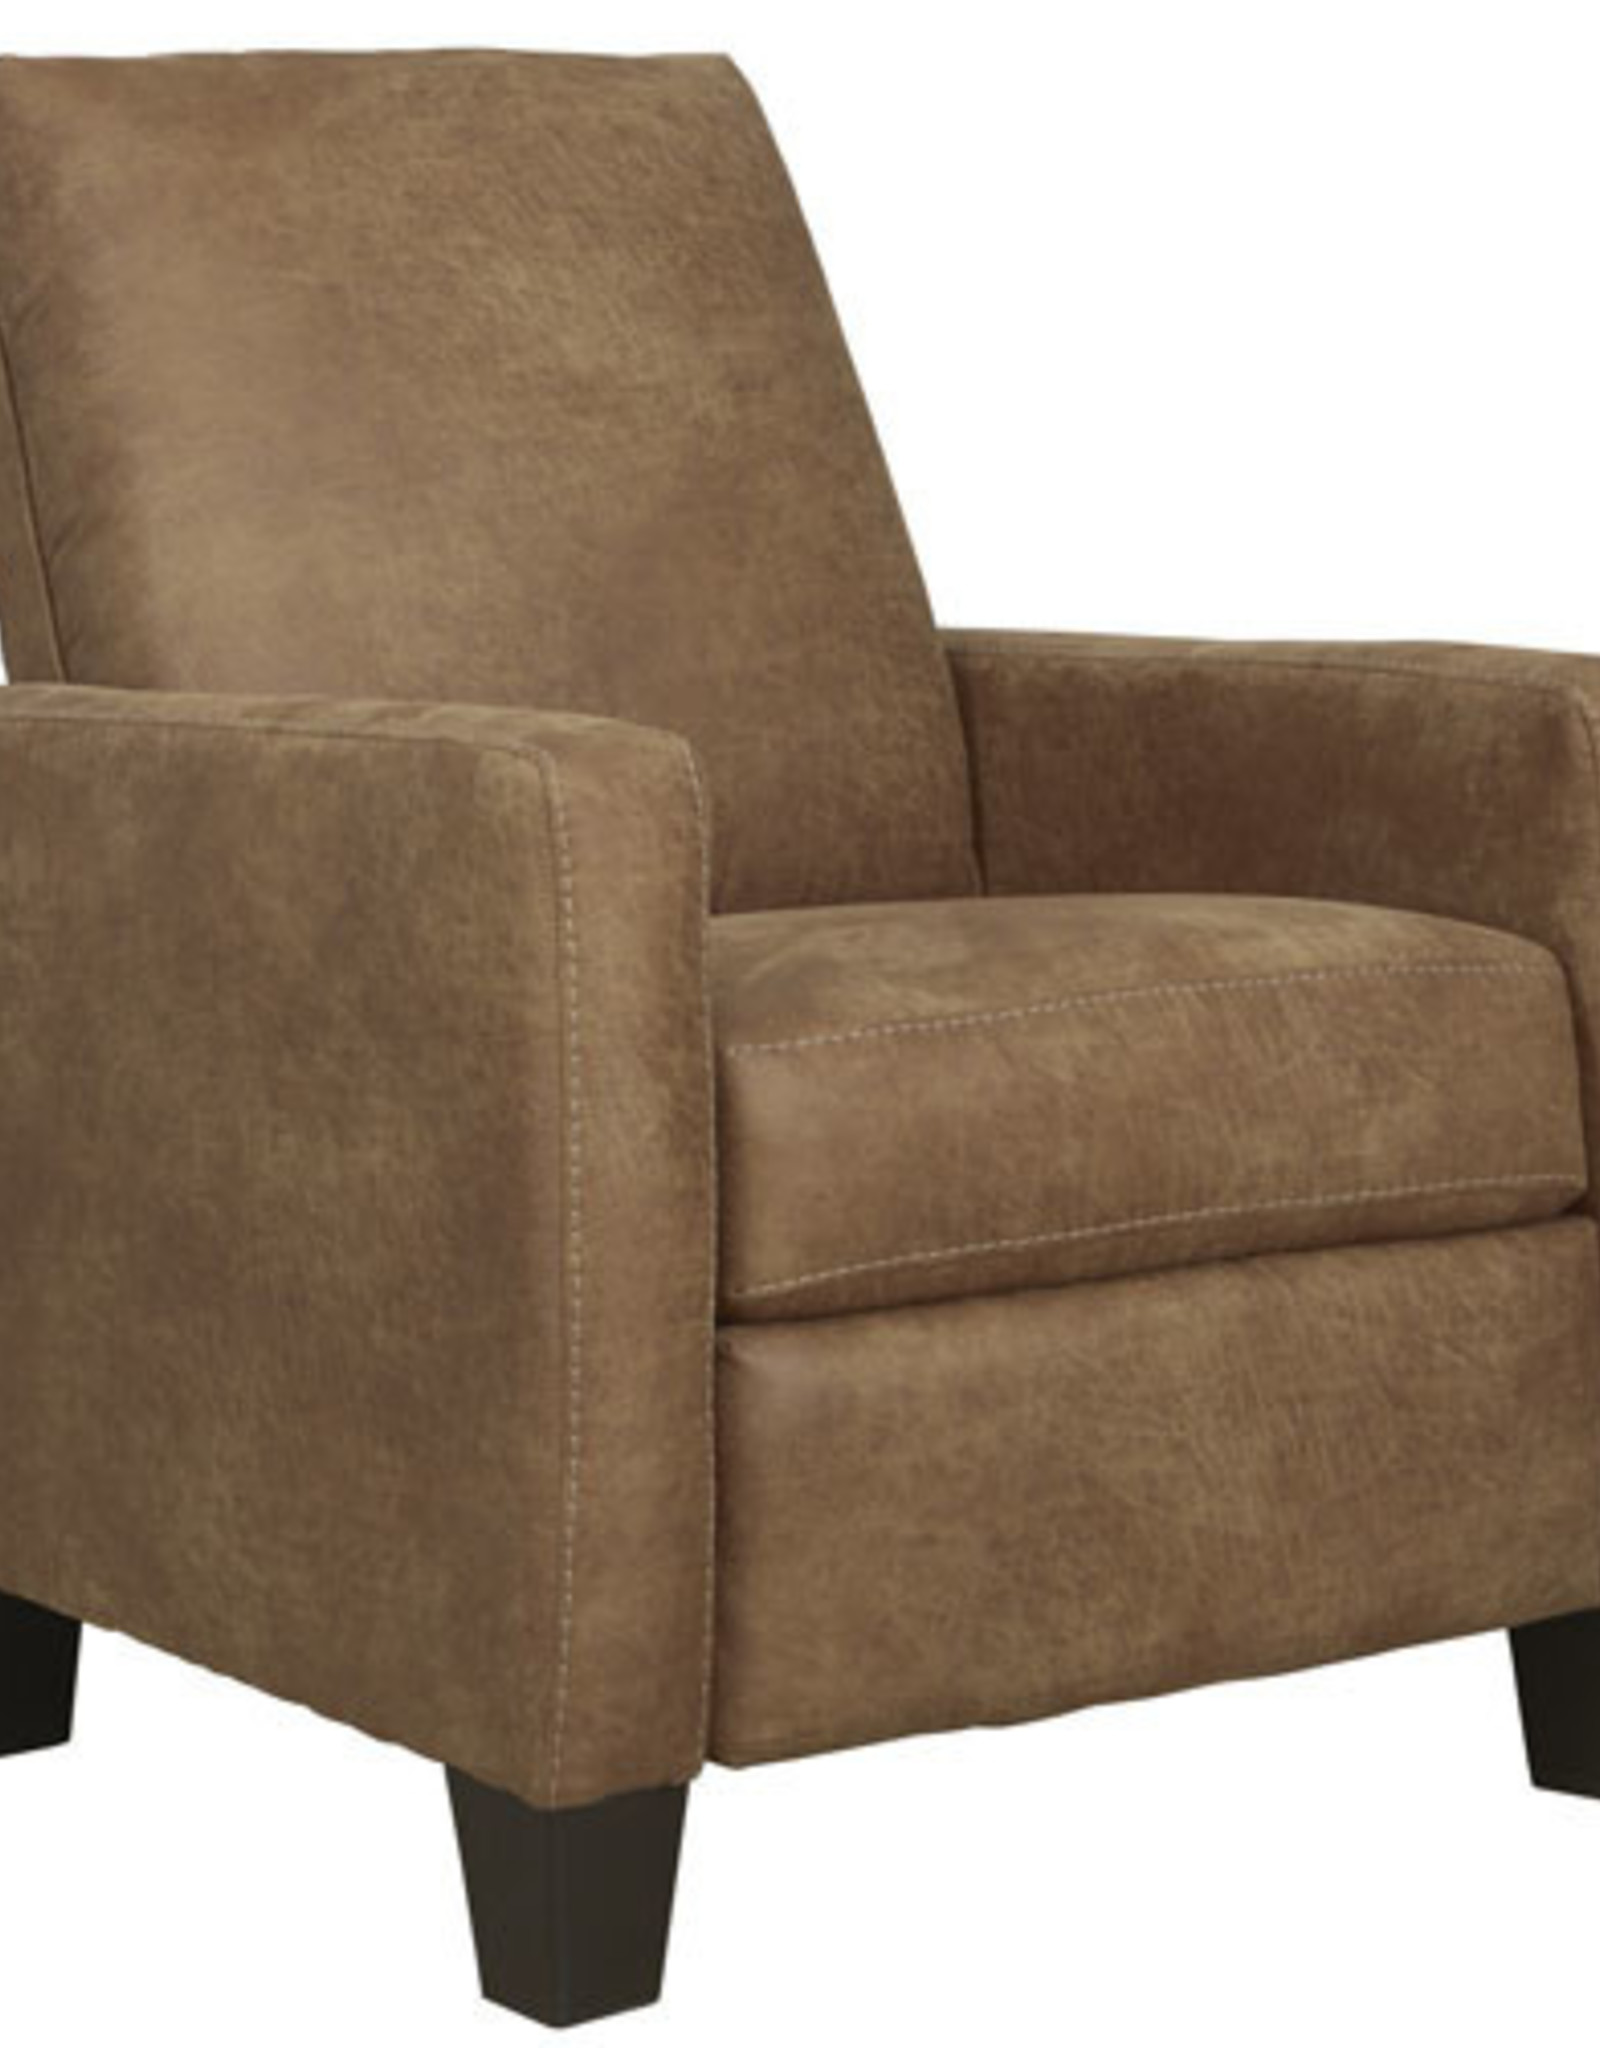 Dattner Low Leg Recliner (Caramel) - Online Only